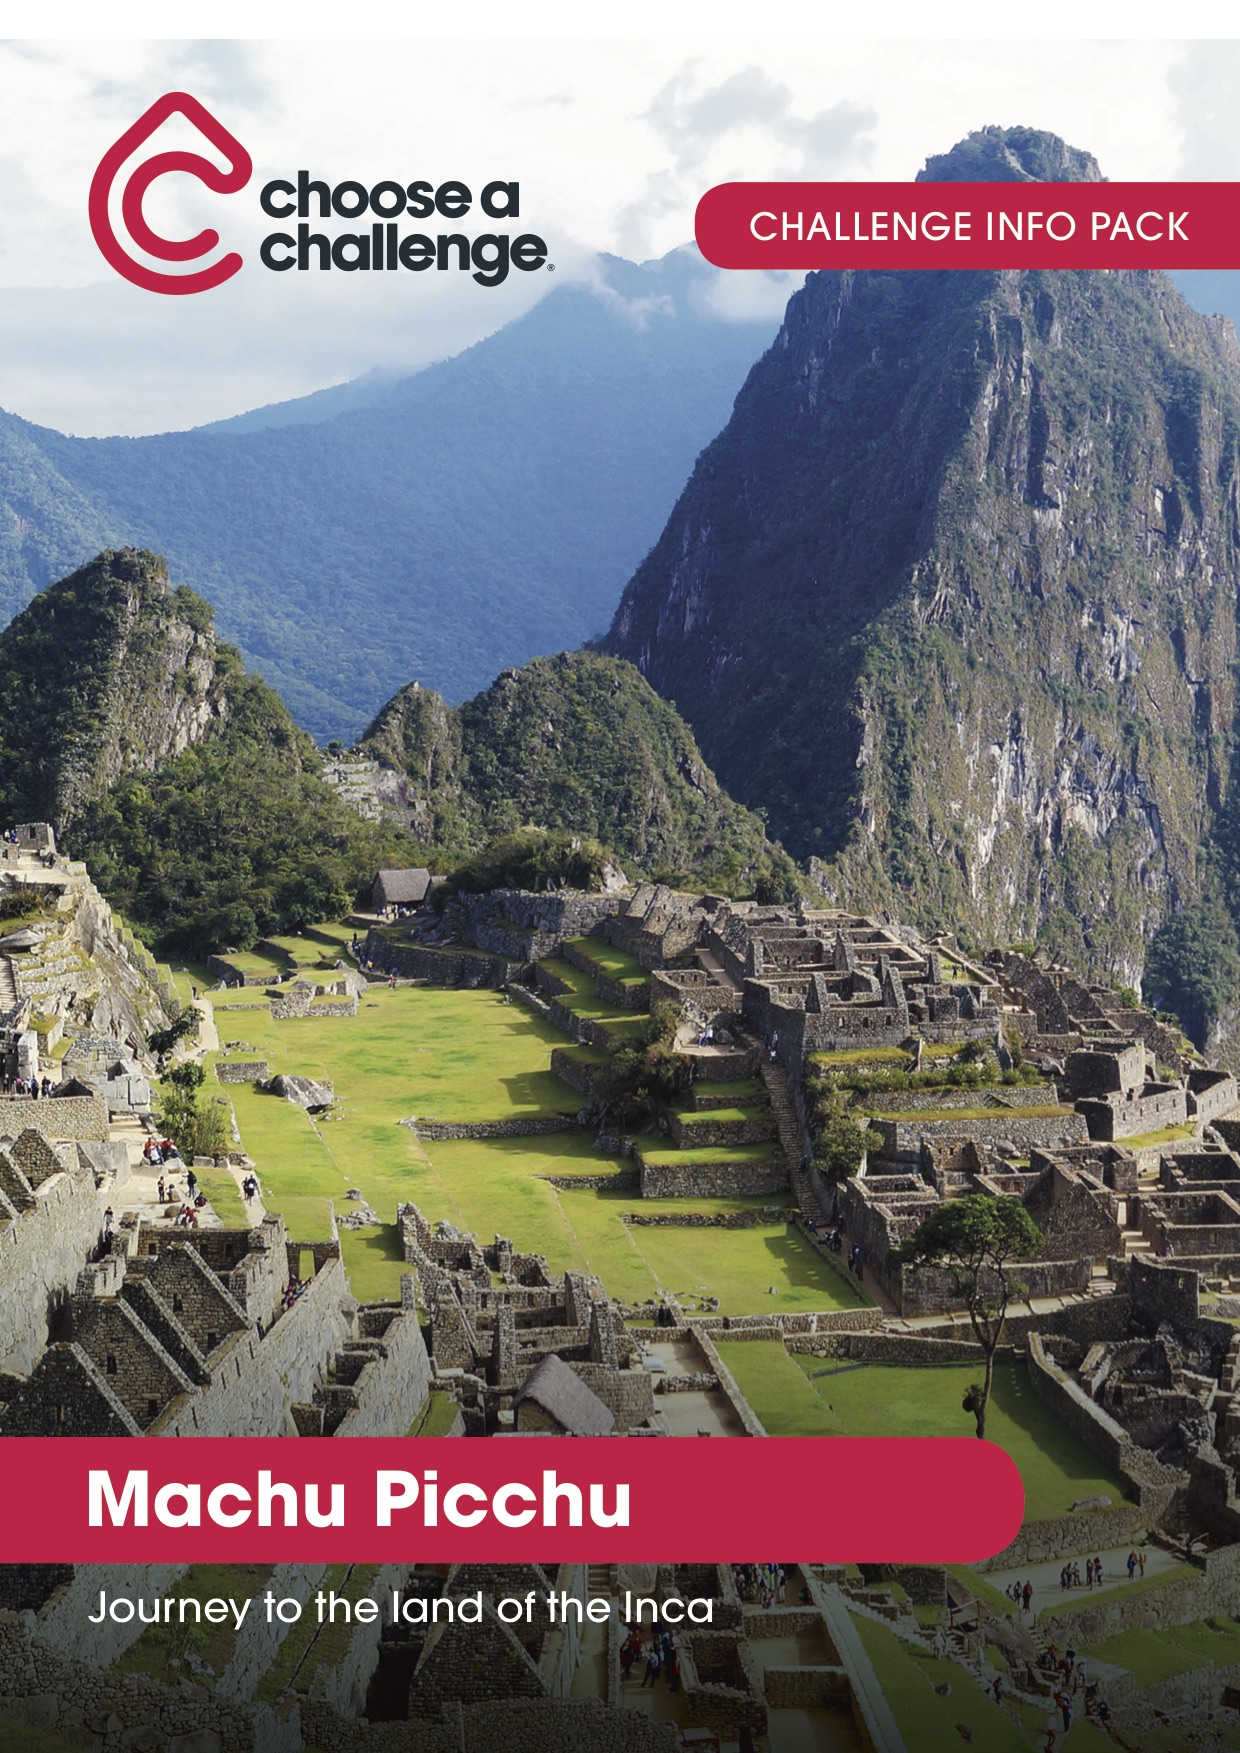 Machu Picchu - Download the full trip brochure to learn more about your accommodations, pricing and the trip itself